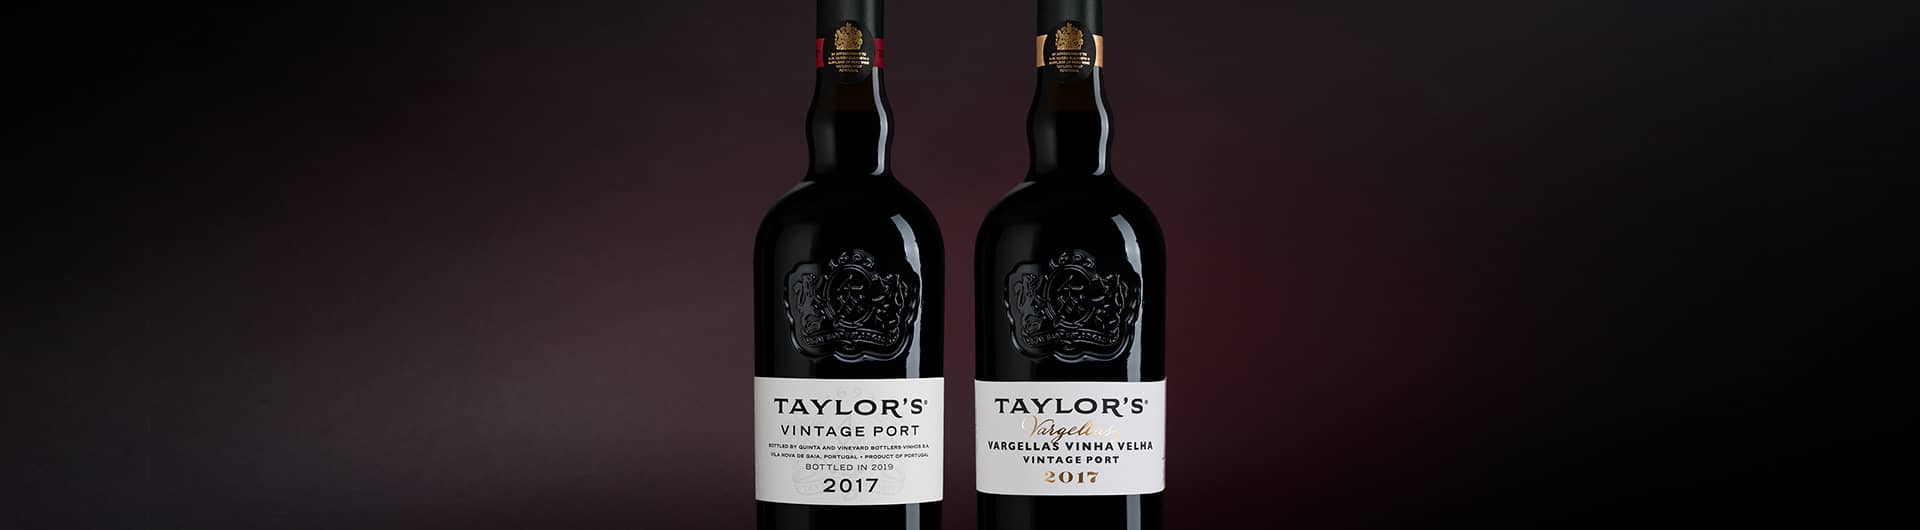 Bloed In Tapijt Taylor S Port Since 1692 Making The Finest Port Wine